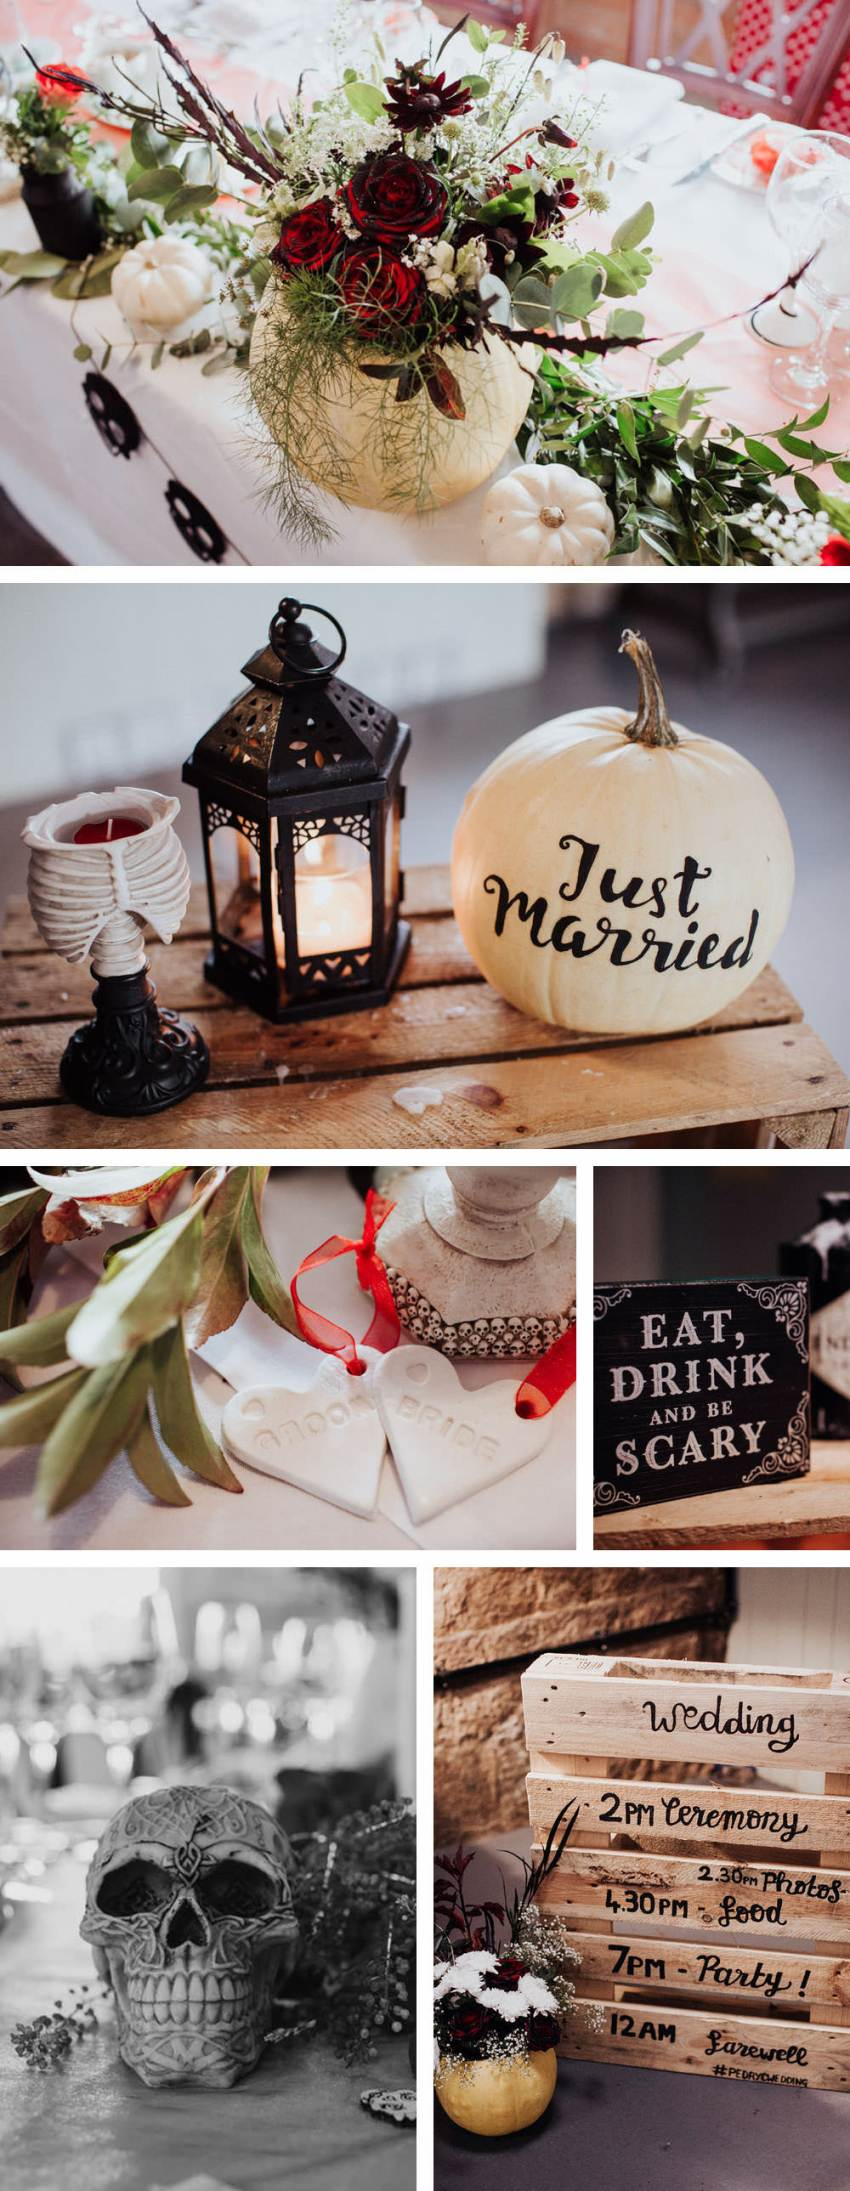 Halloween wedding decorations. Painted 'just married' text on pumpkin and flowers in a pumpkin.